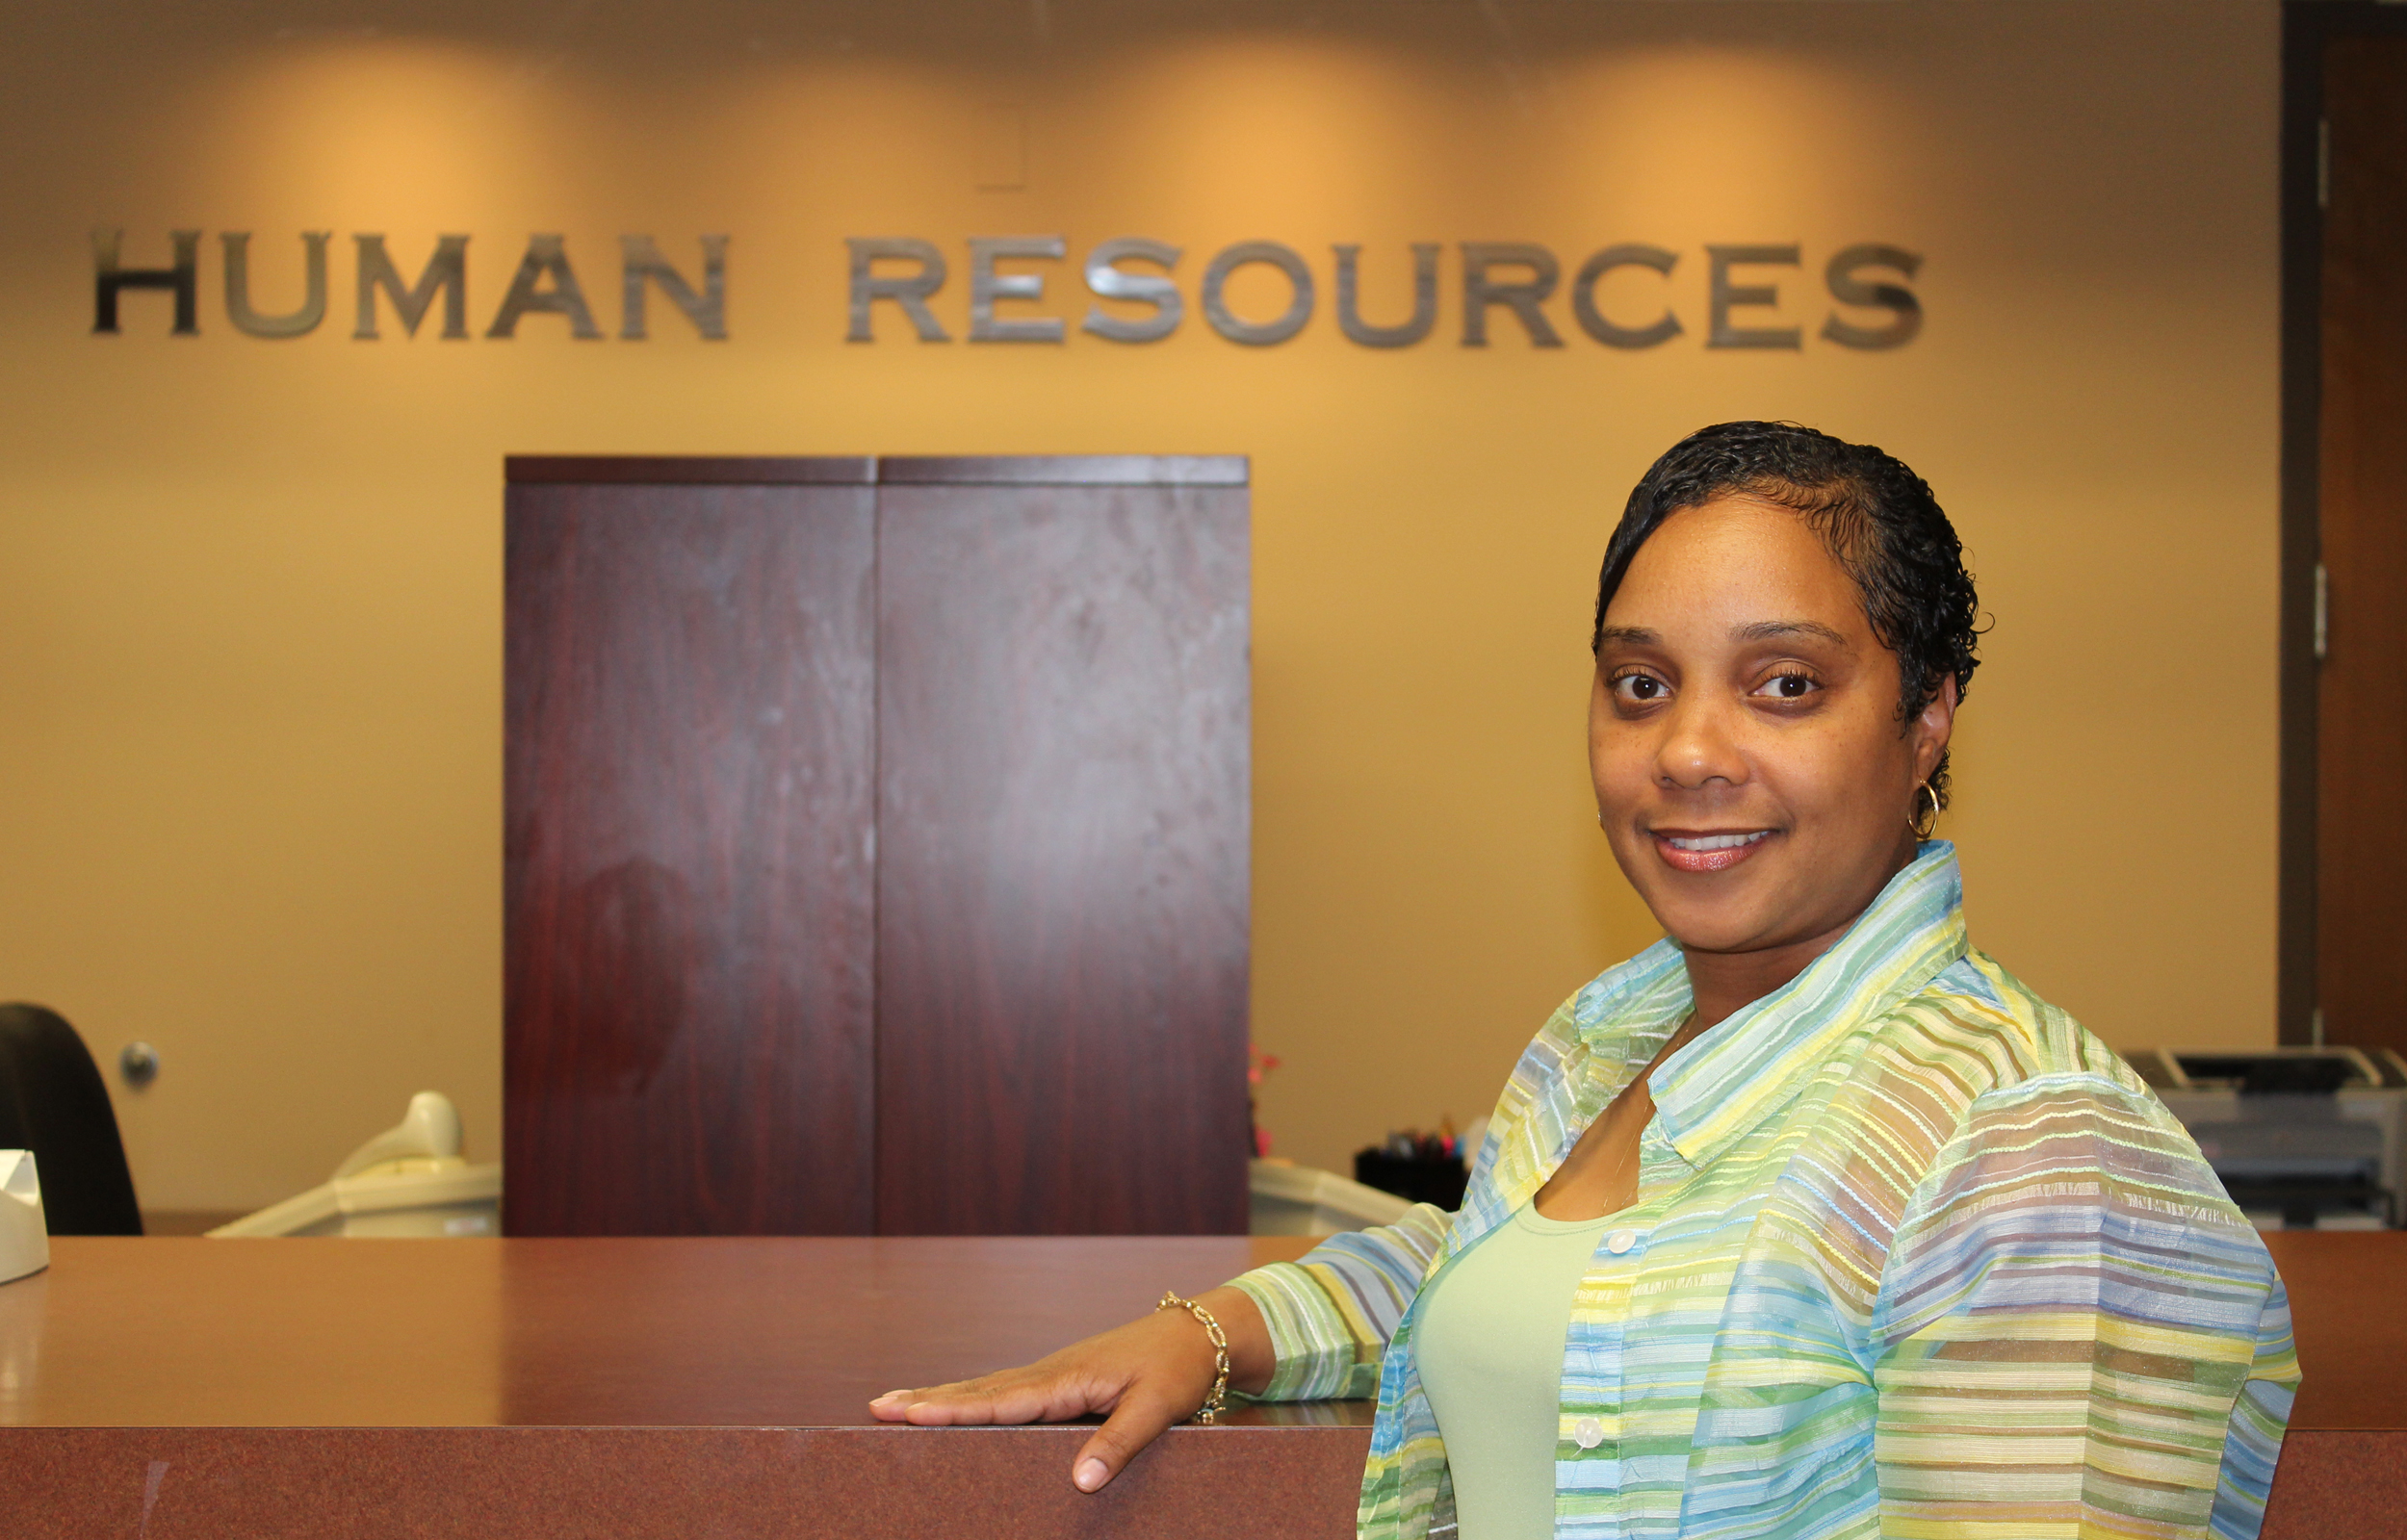 Approaching Human Resources Department To Improve Your Career?